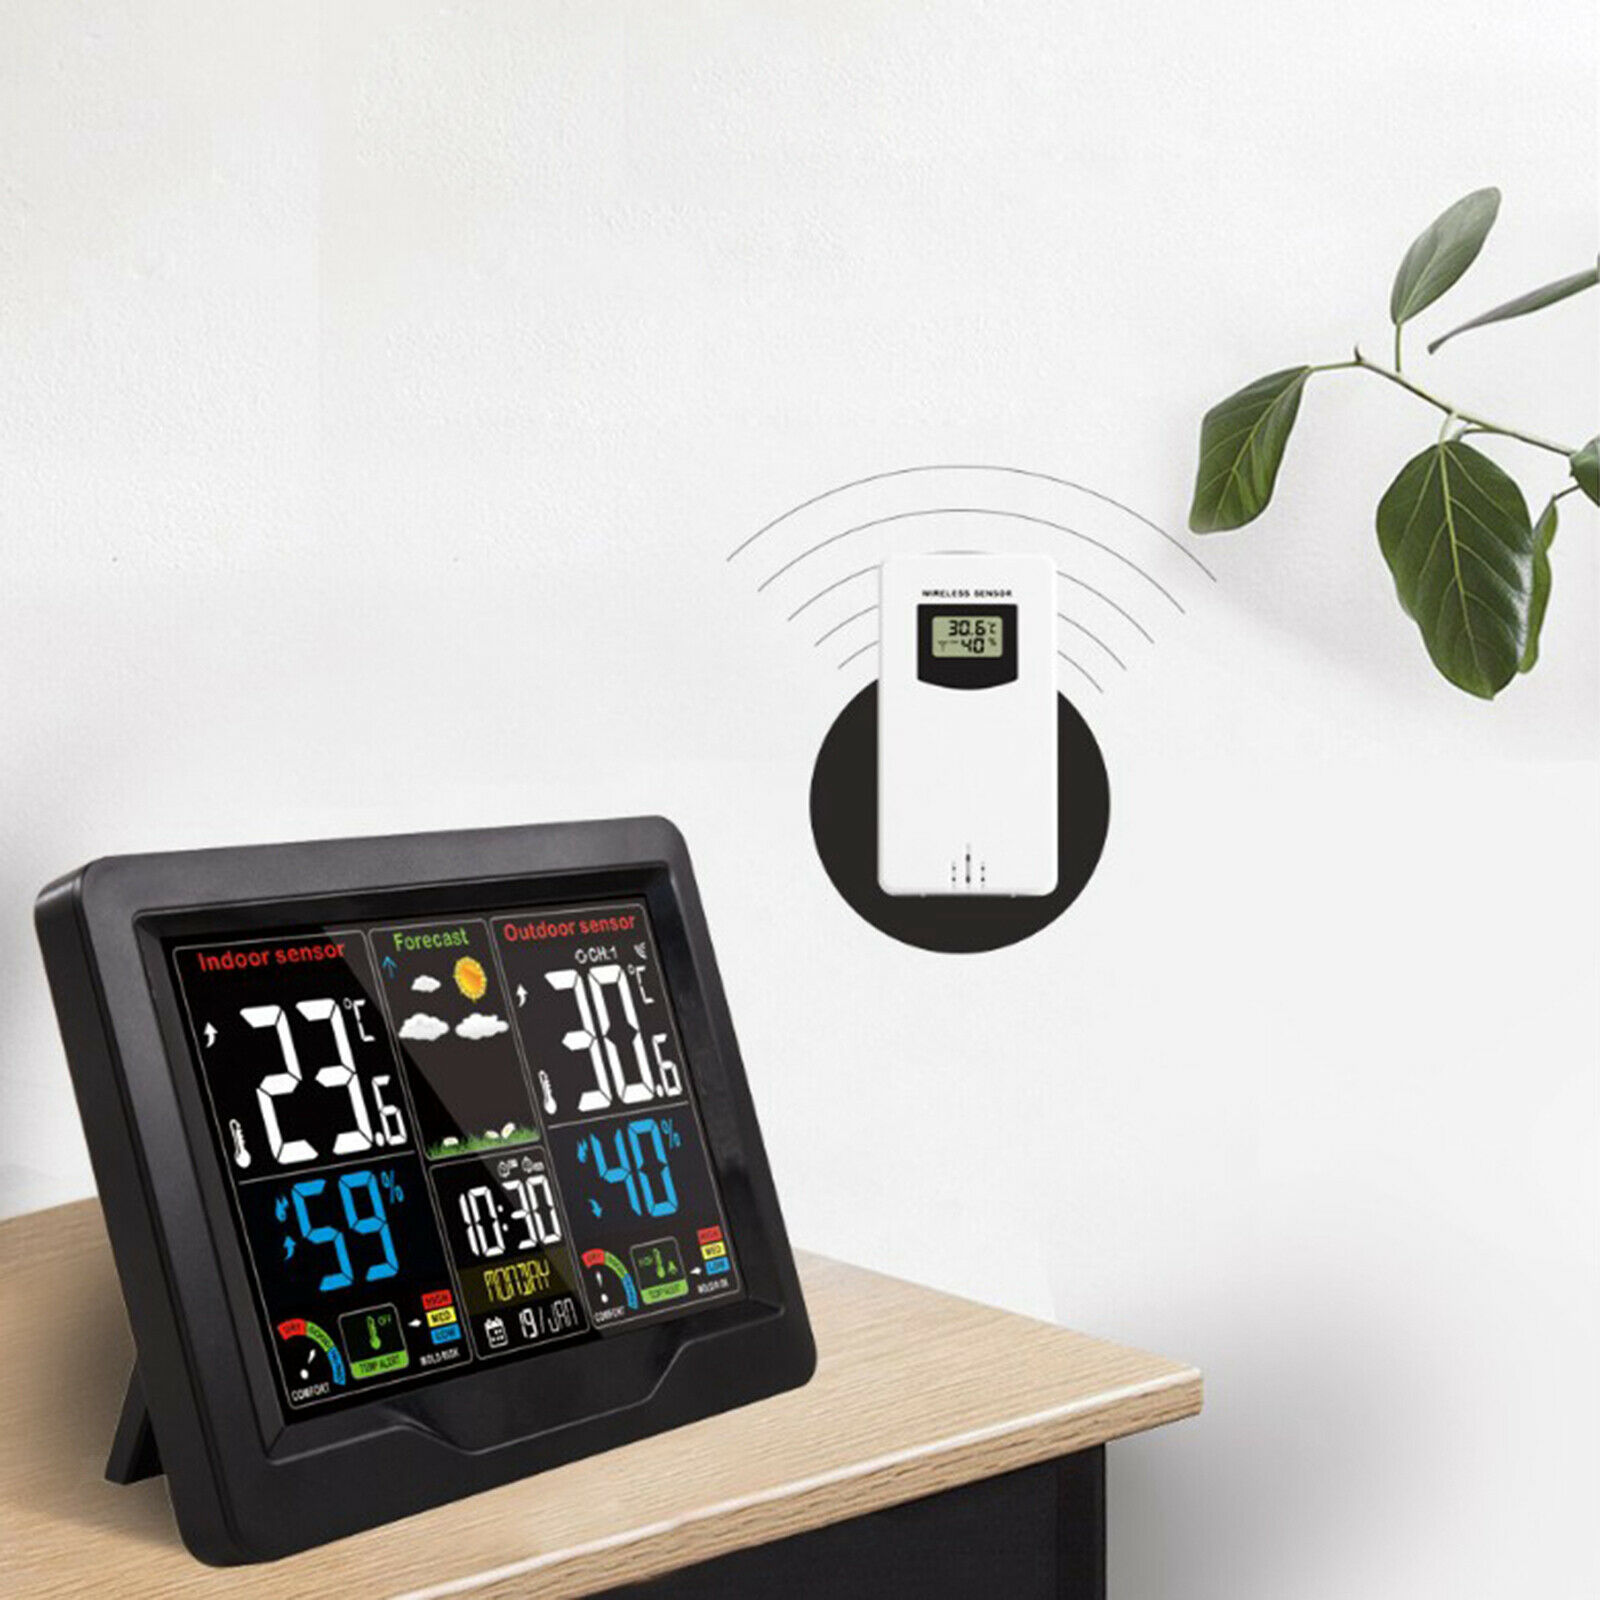 Digital LCD Screen Weather Forcast Station Calendar Thermometer Hygrometer Clock